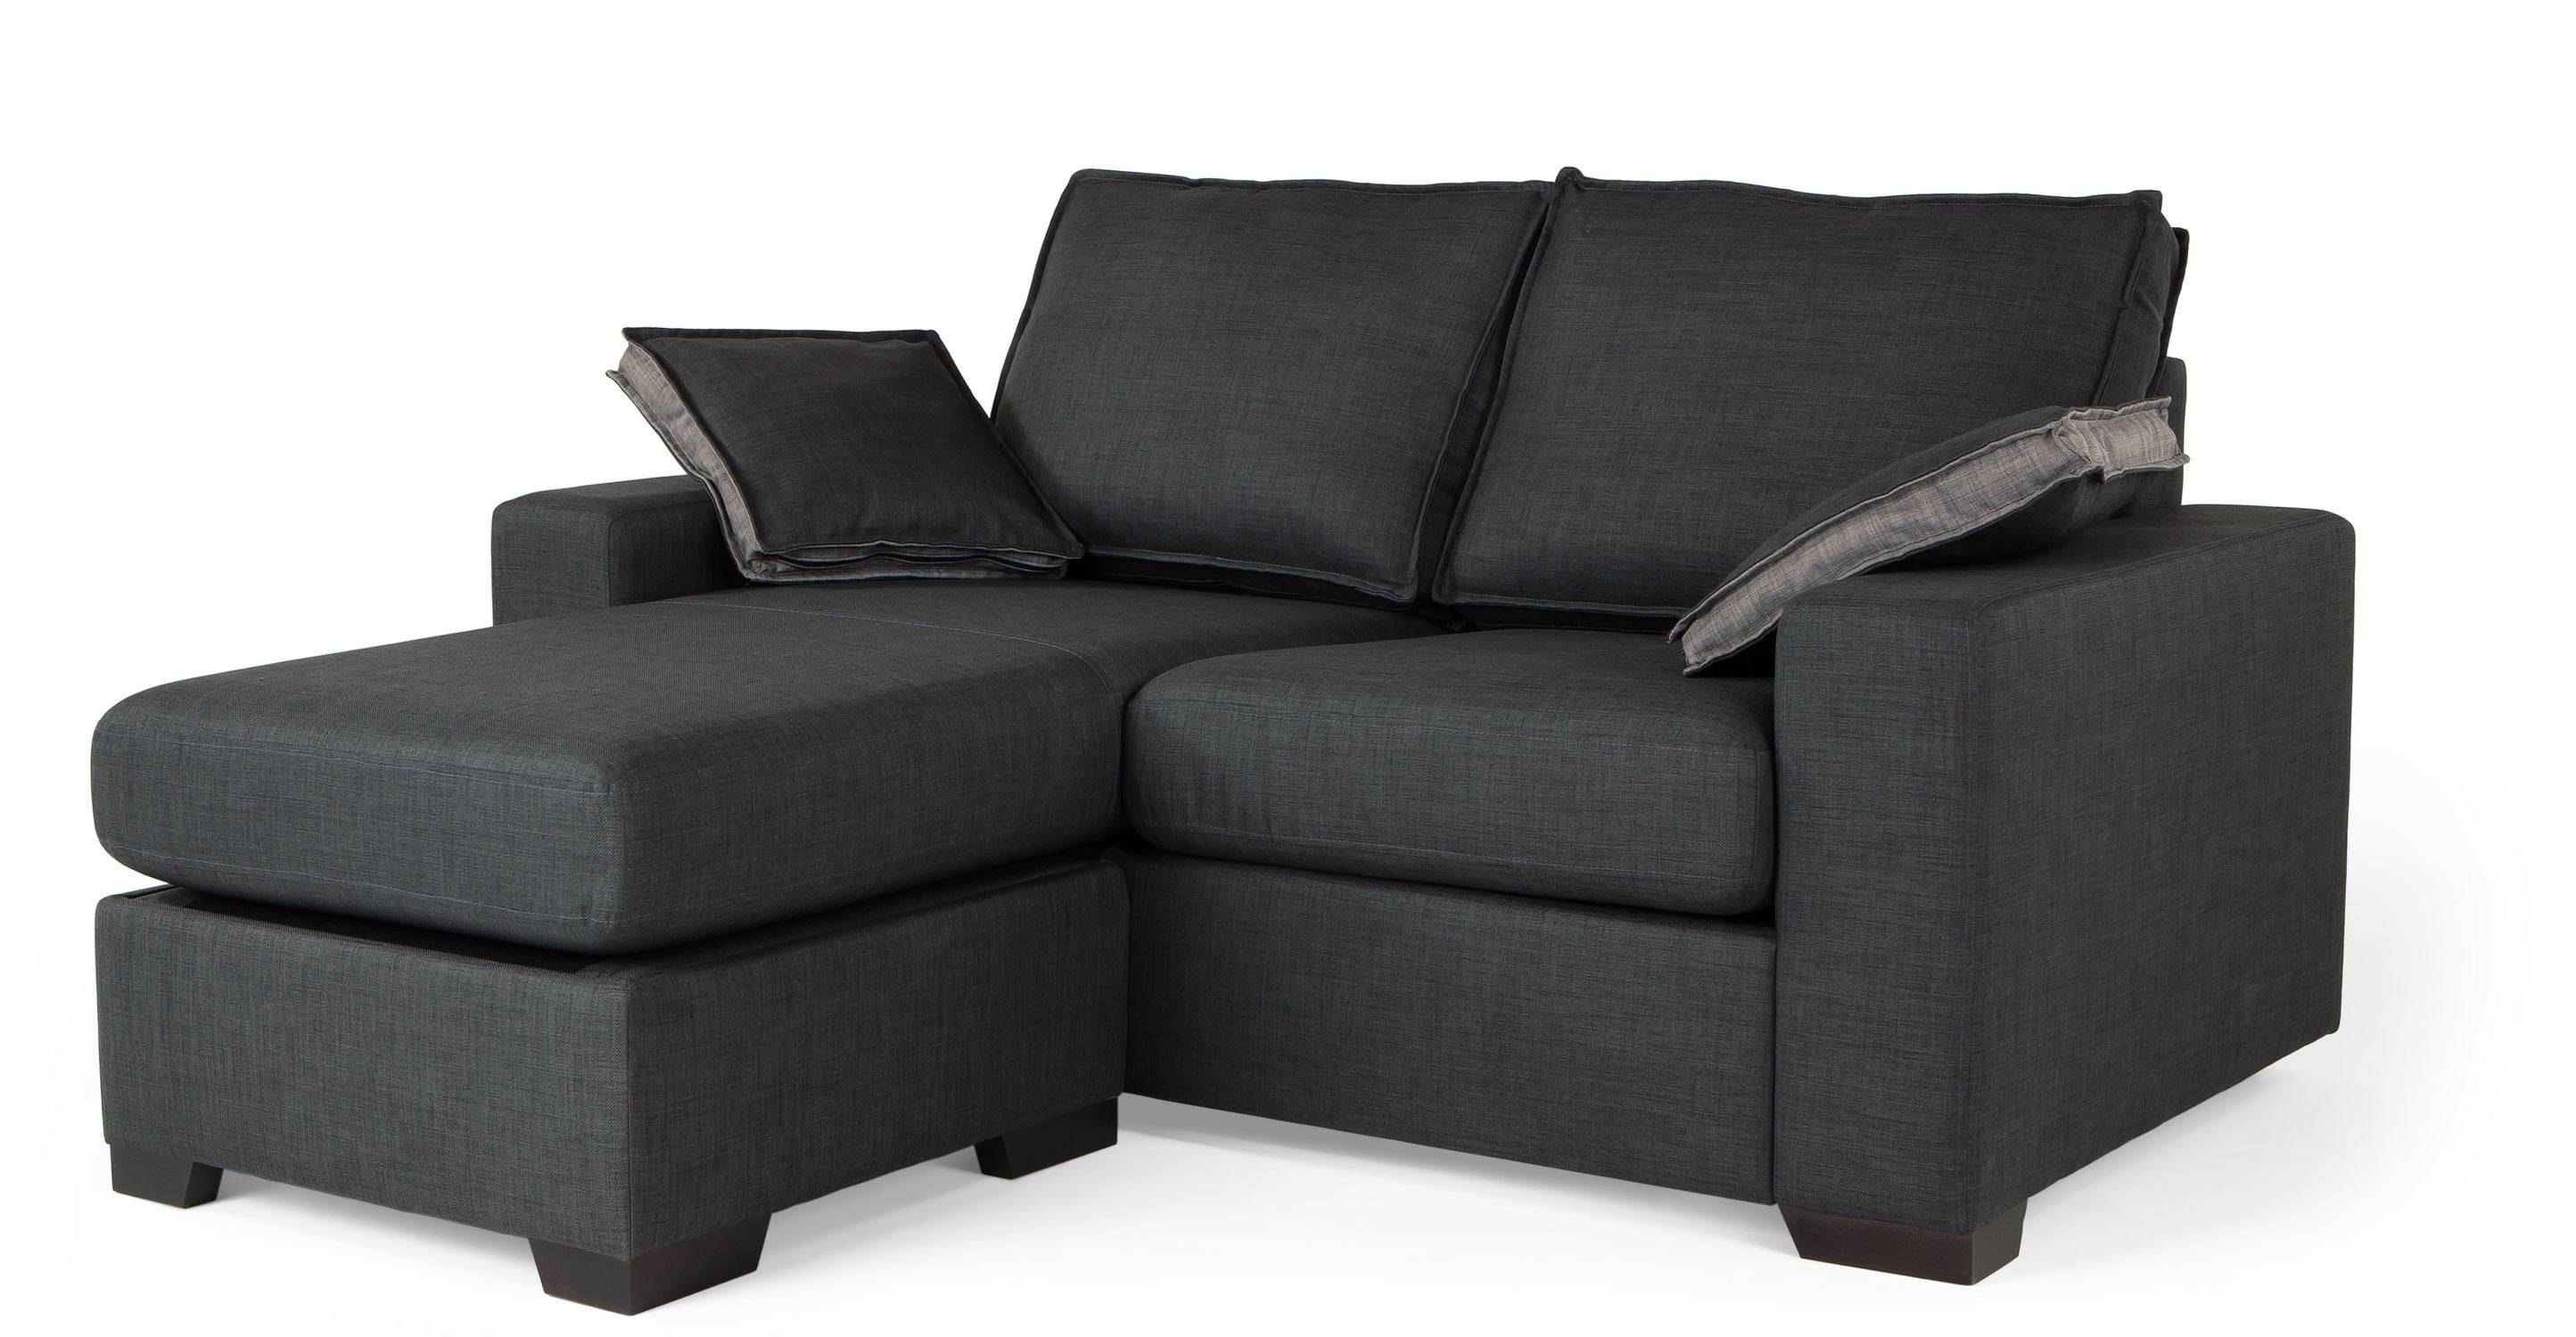 Sofa Beds For Small Apartement | Eva Furniture Inside Sofa Beds With Chaise Lounge (View 11 of 15)